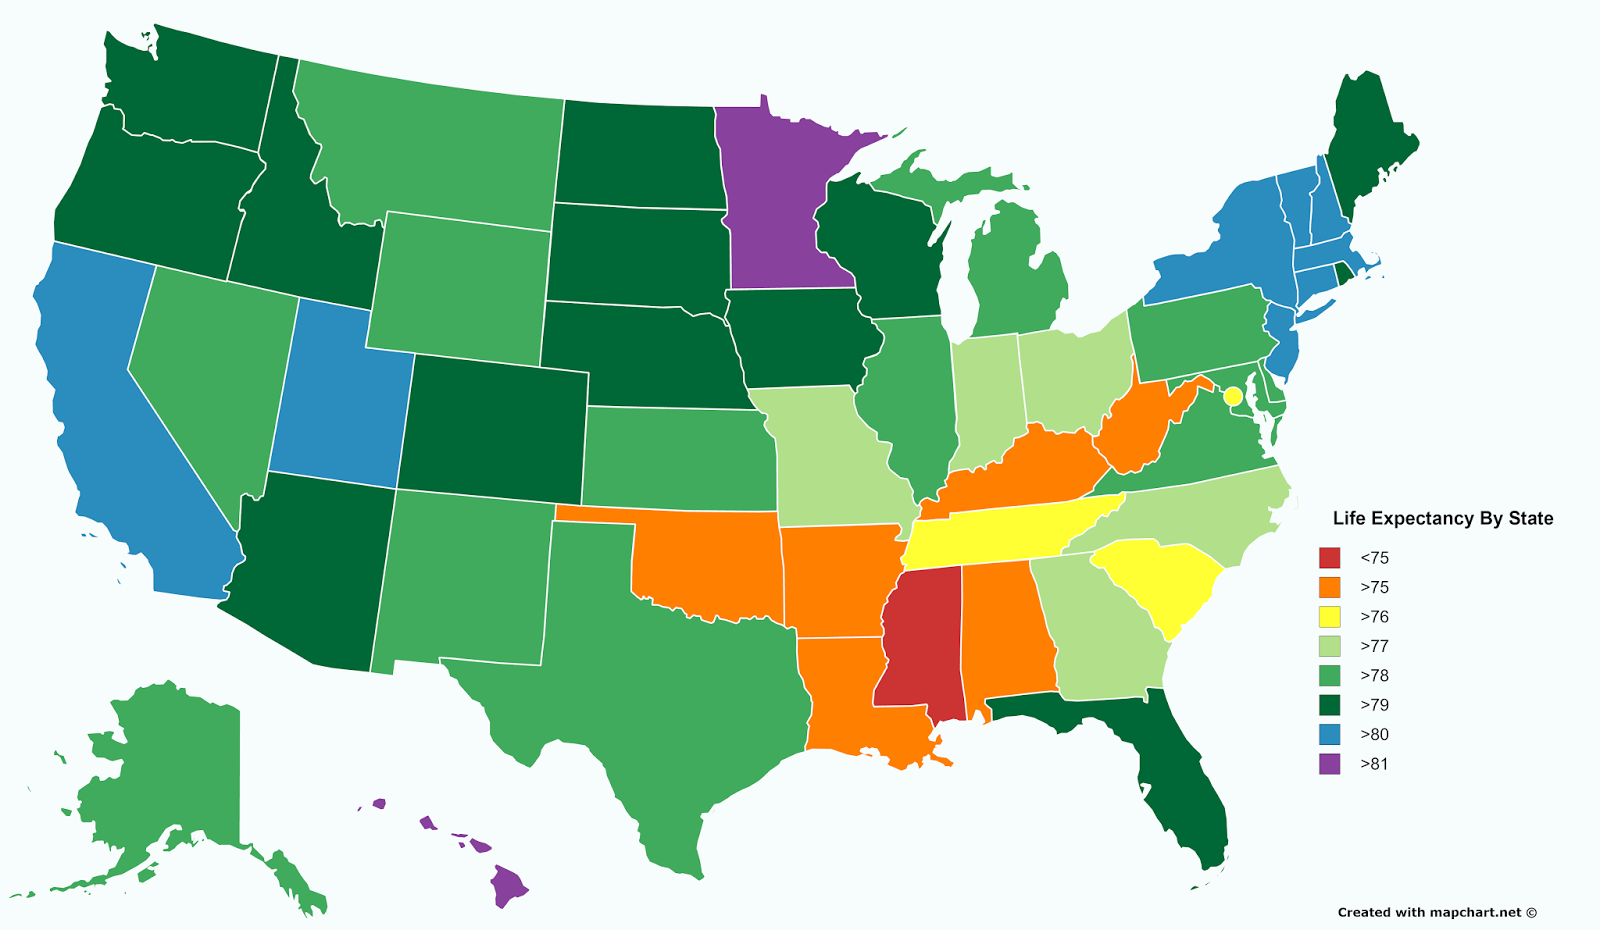 Life Expectancy by U.S. State